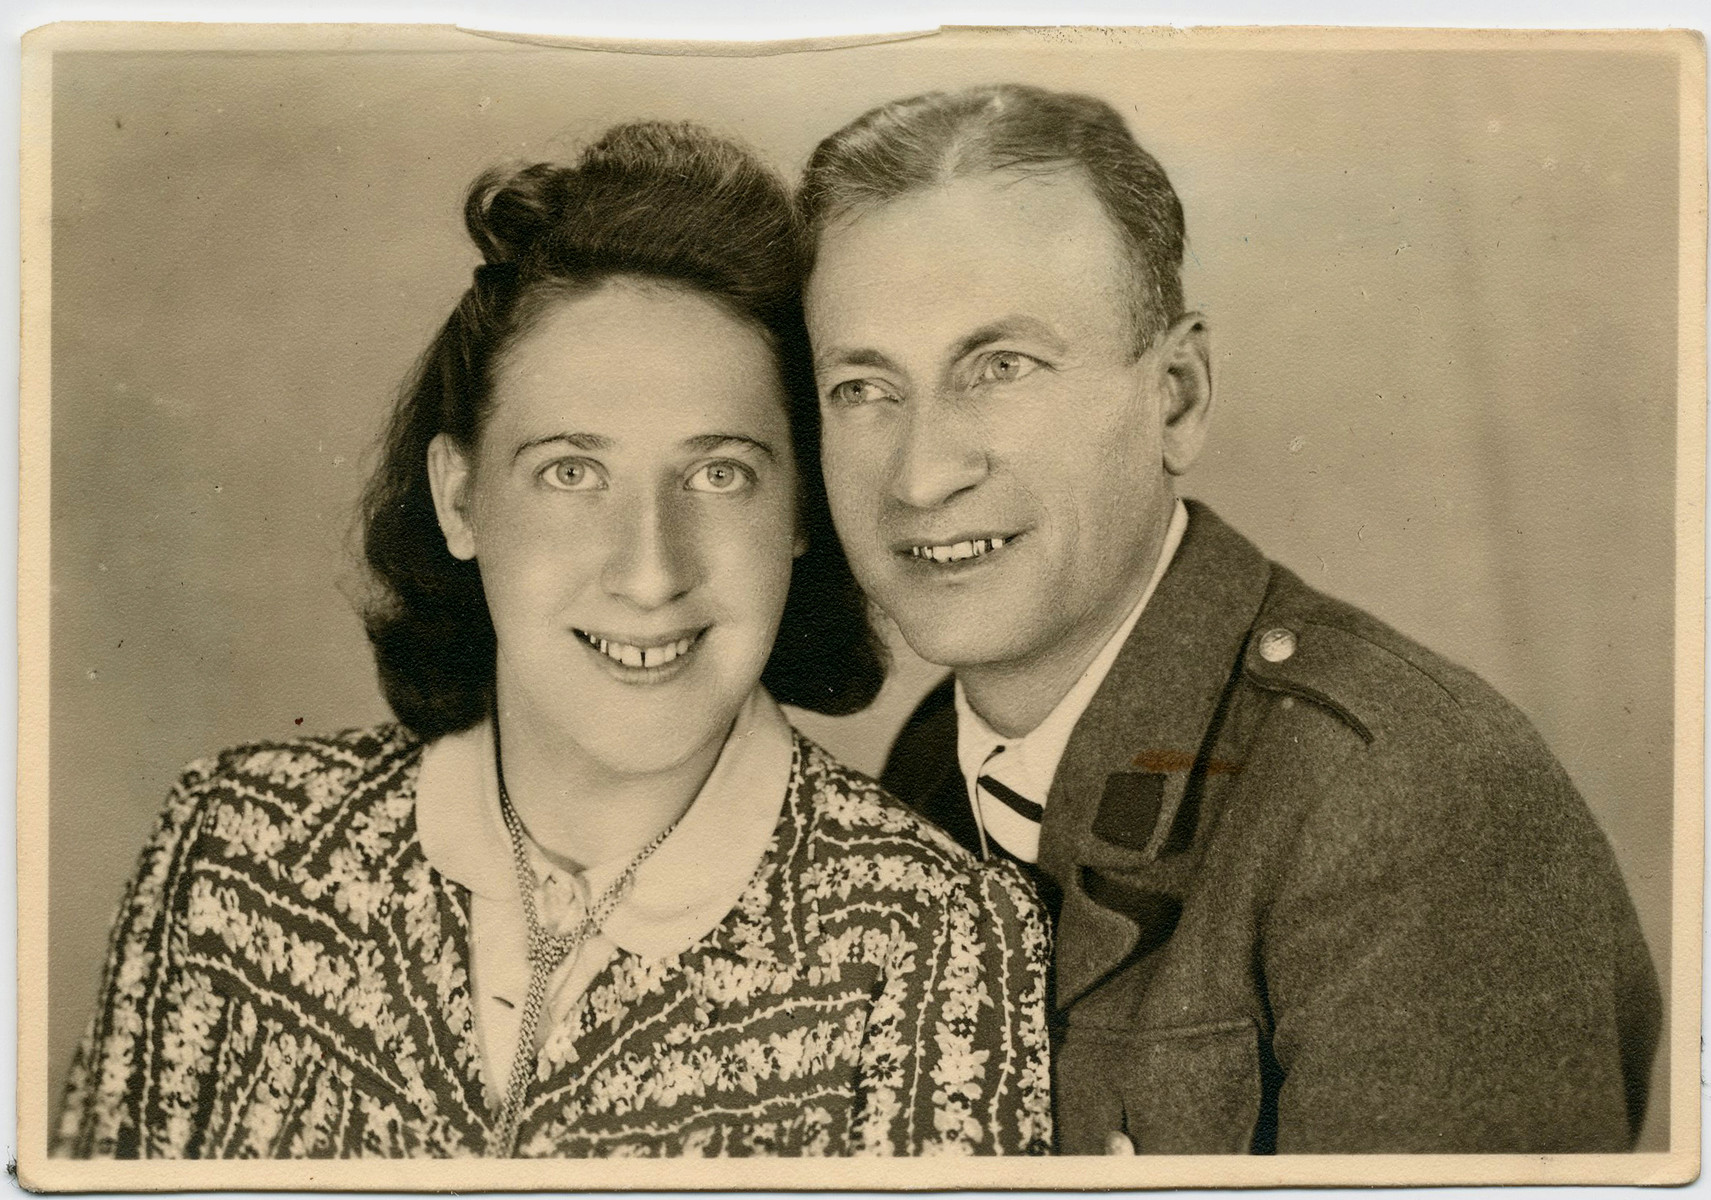 Wedding portrait of Helen Sztelman and Wolf Laudon.